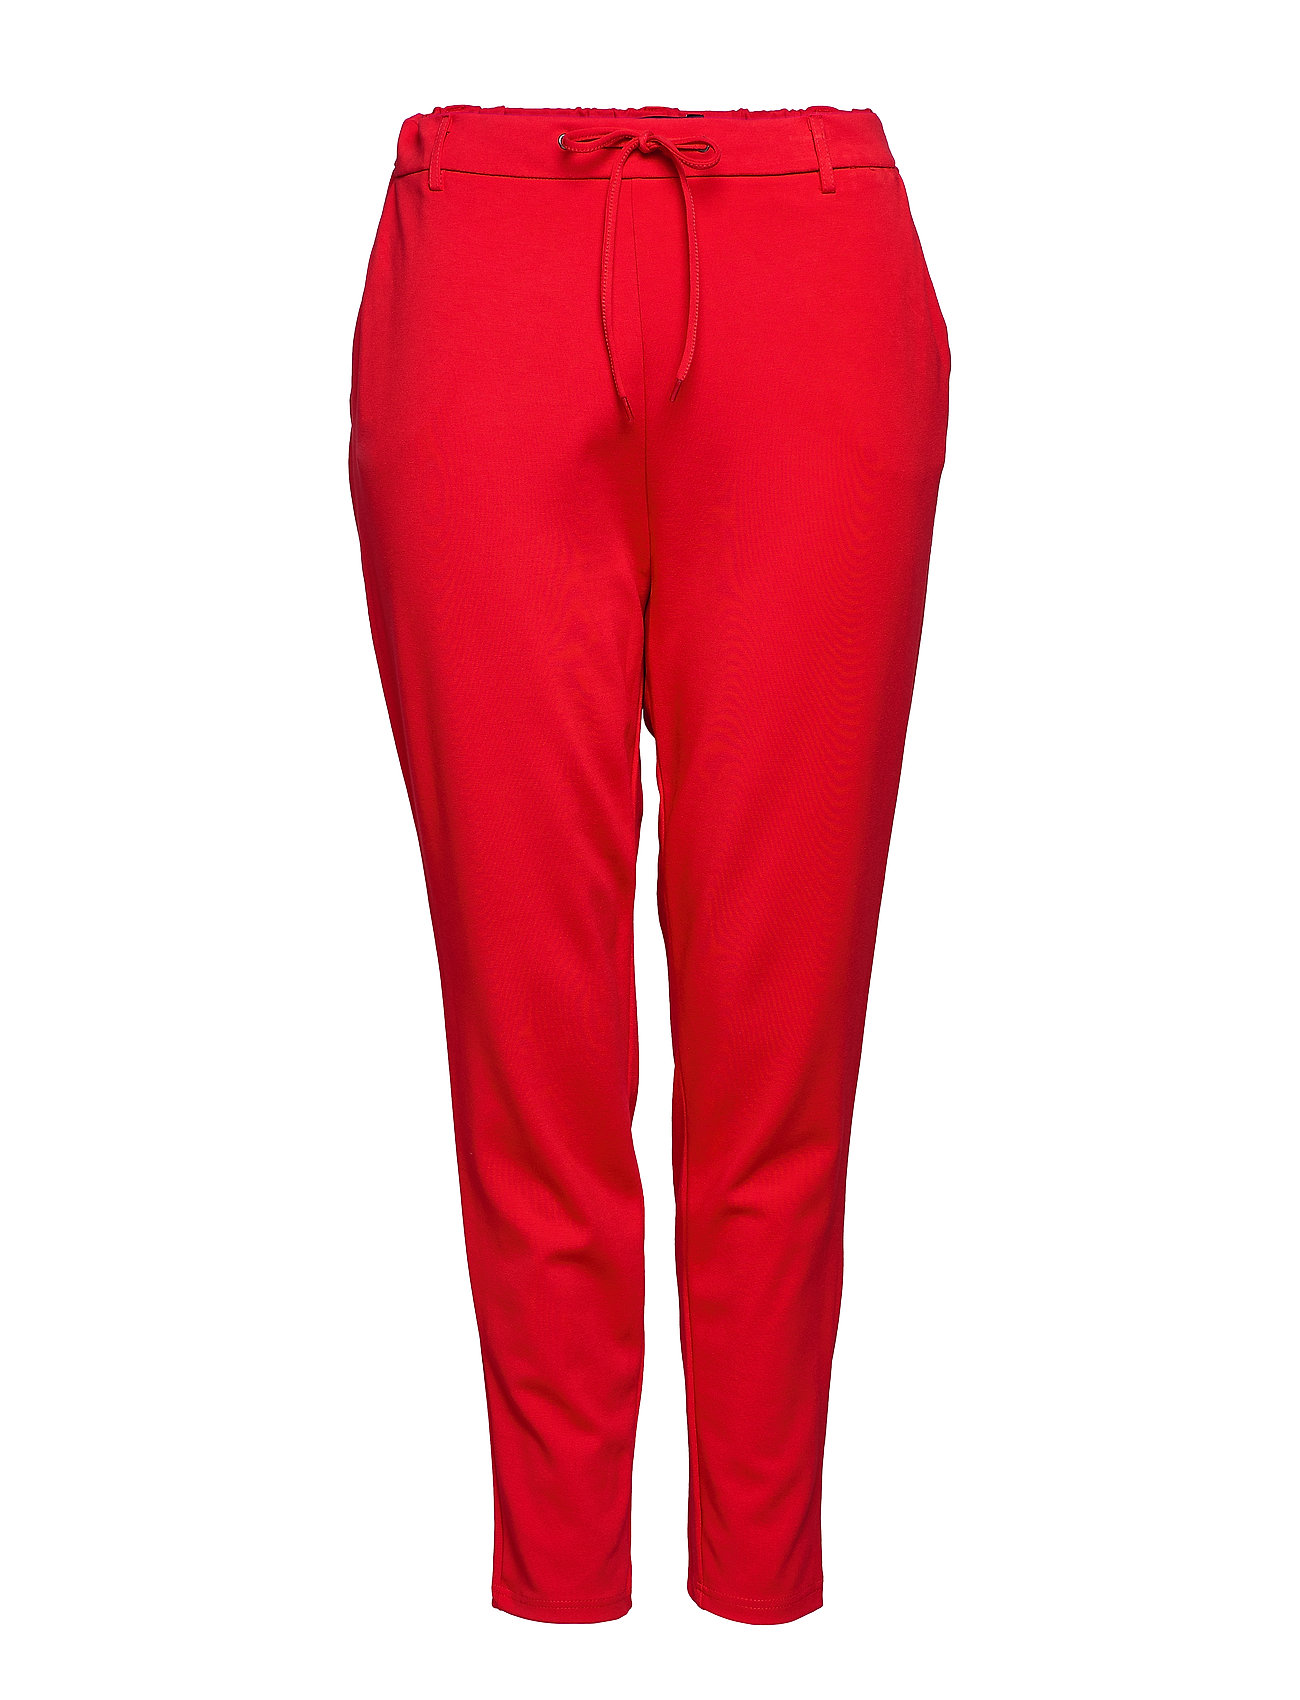 Image of Trousers 7/8 Length Plus Tappered Fit Casual Bukser Rød Zizzi (3488816153)